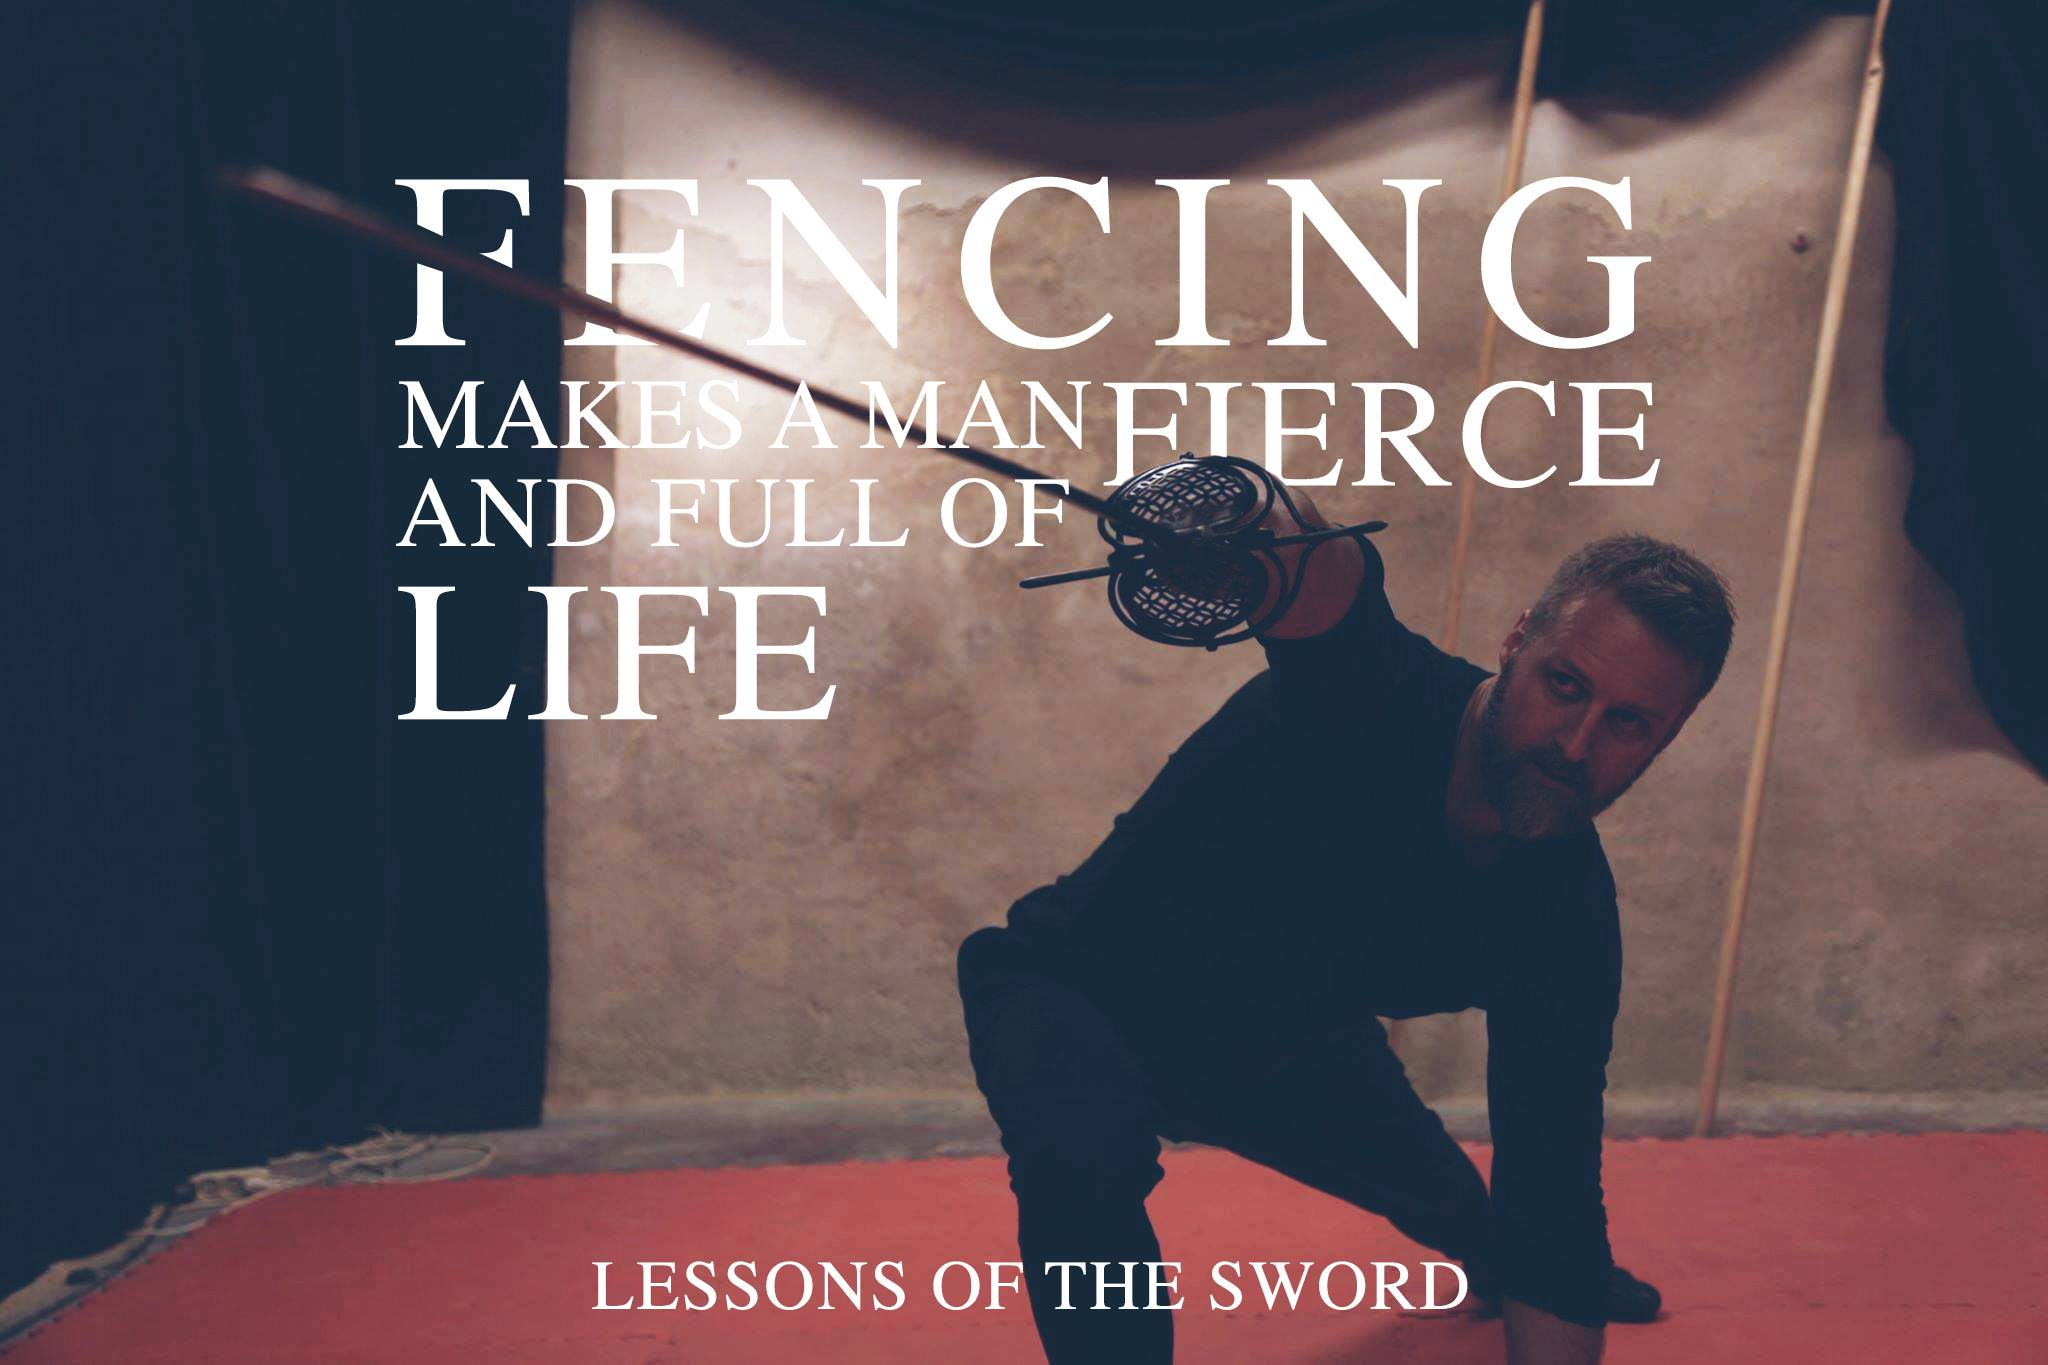 Fencing makes a man fierce and full of life